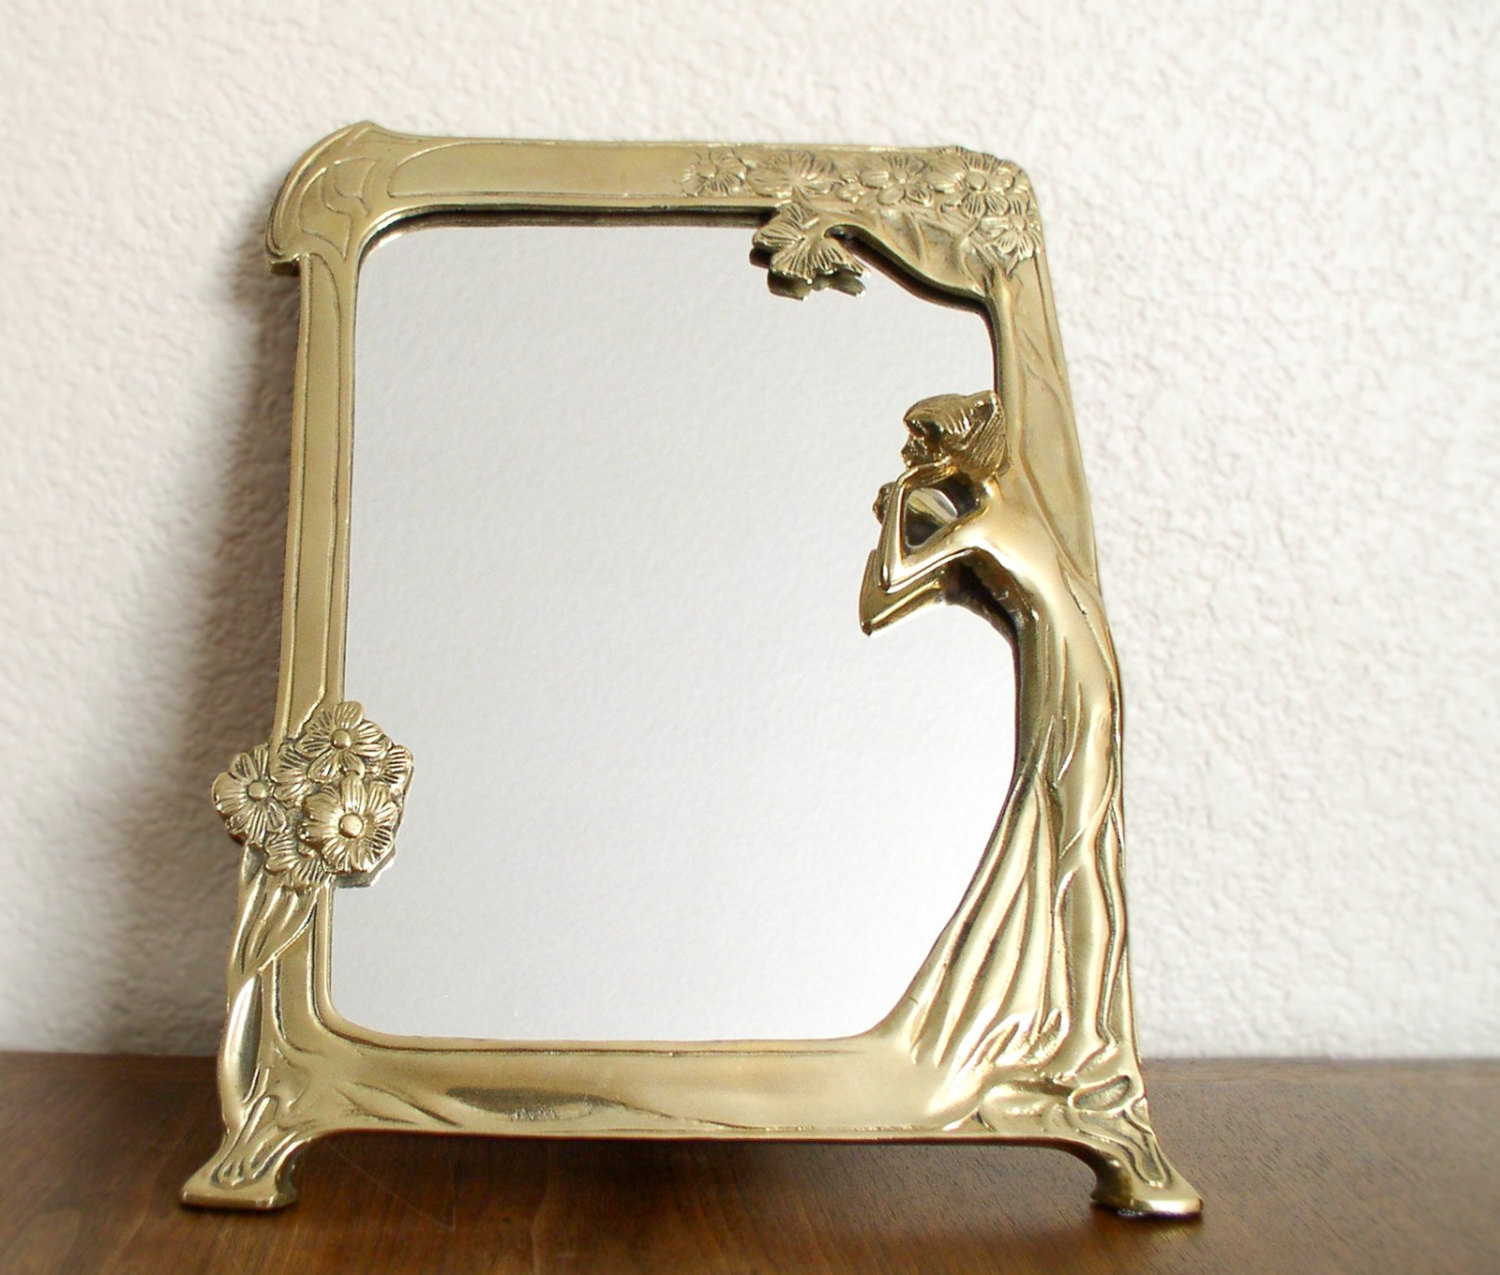 Vintage Brass Art Nouveau Mirror Woman Gazing With Tree And Regarding Art Nouveau Mirrors For Sale (View 15 of 15)